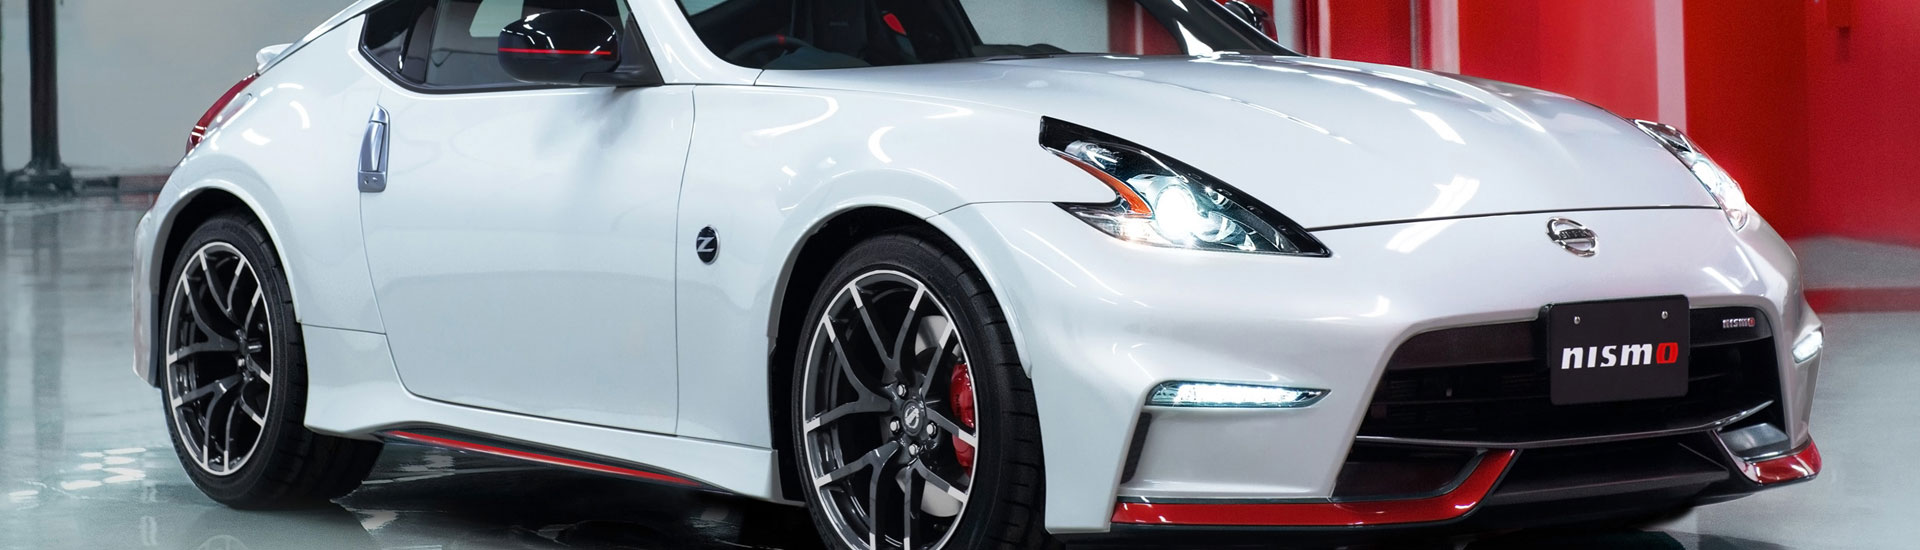 Nissan Aftermarket Accessories & Tints